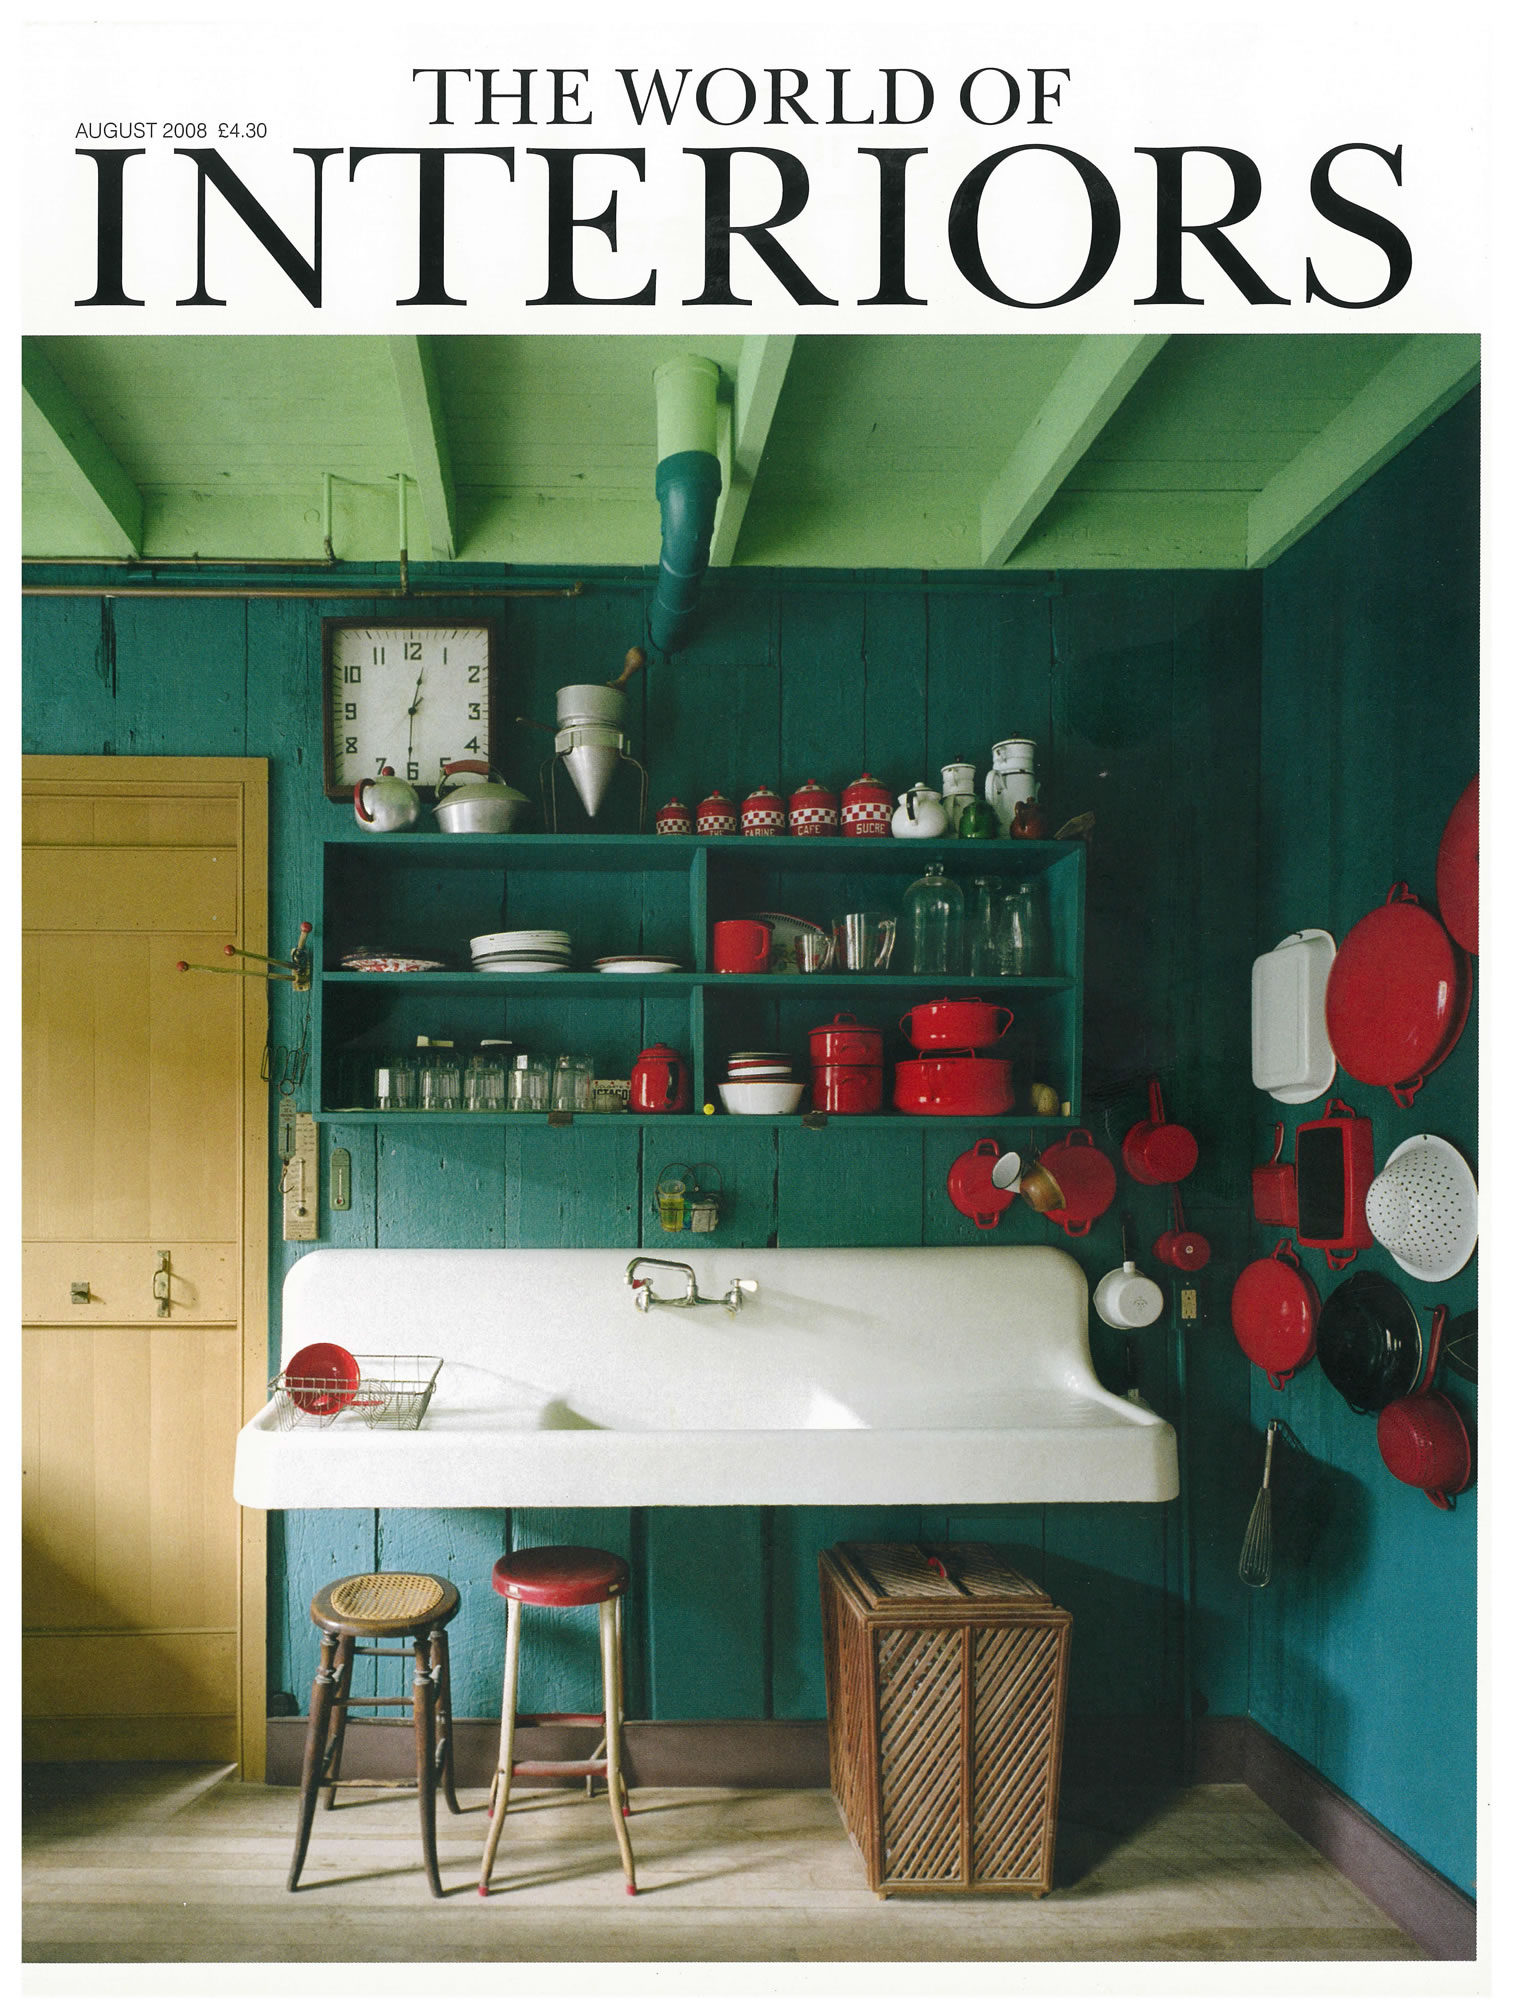 The World Of Interiors August 2008 Article On The